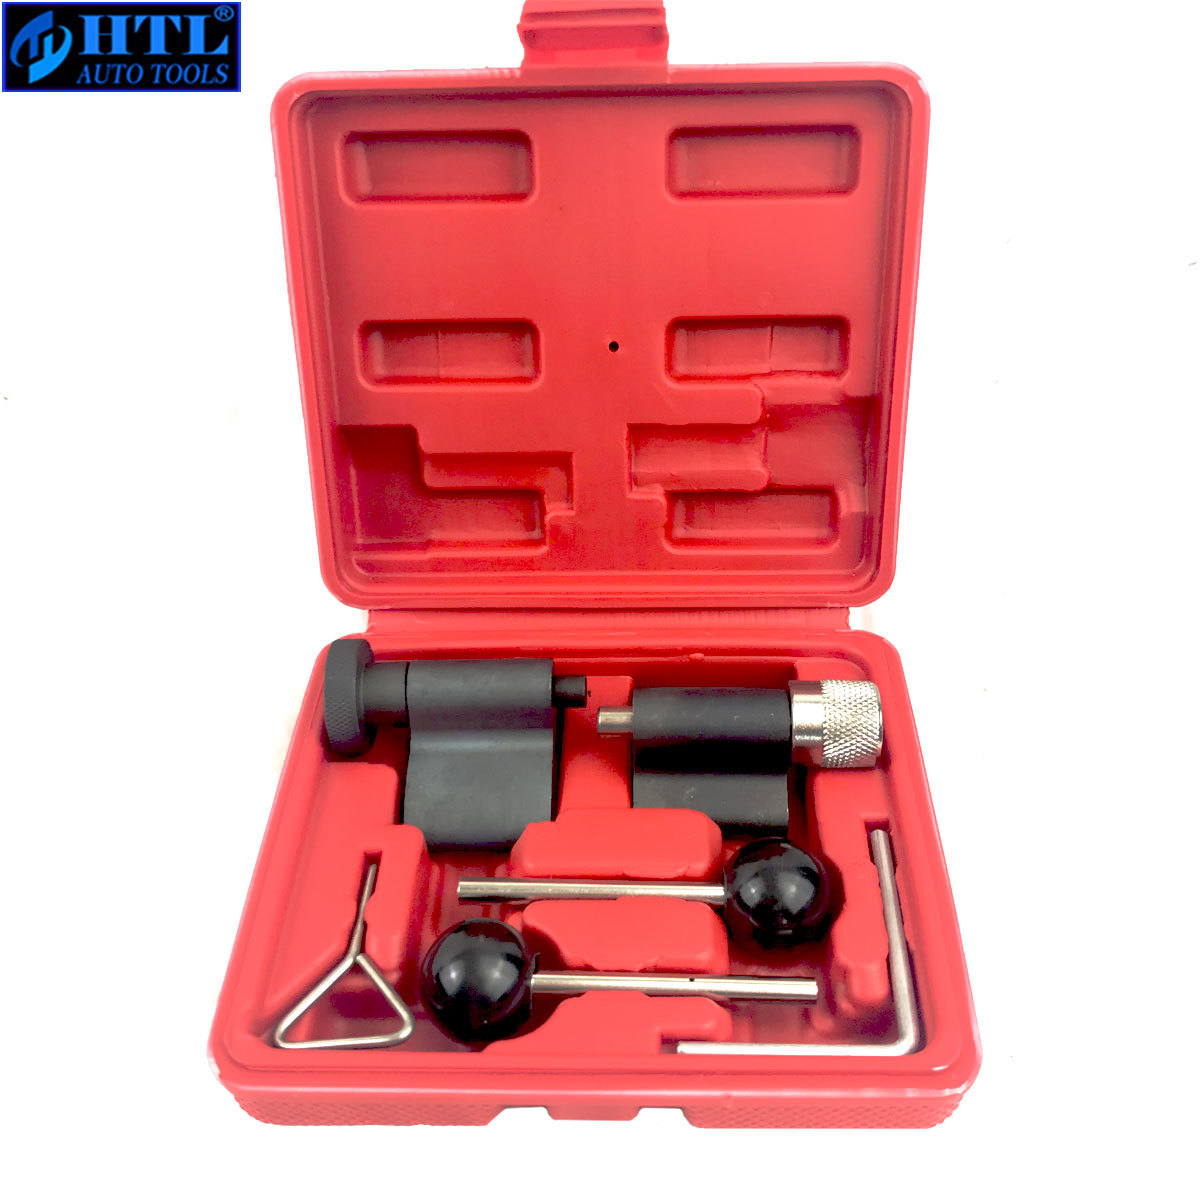 6pc Universal Diesel Motor Timing Cam Crank Locking <font><b>Tool</b></font> Set Für <font><b>VW</b></font> <font><b>AUDI</b></font> T10050 T10100 image